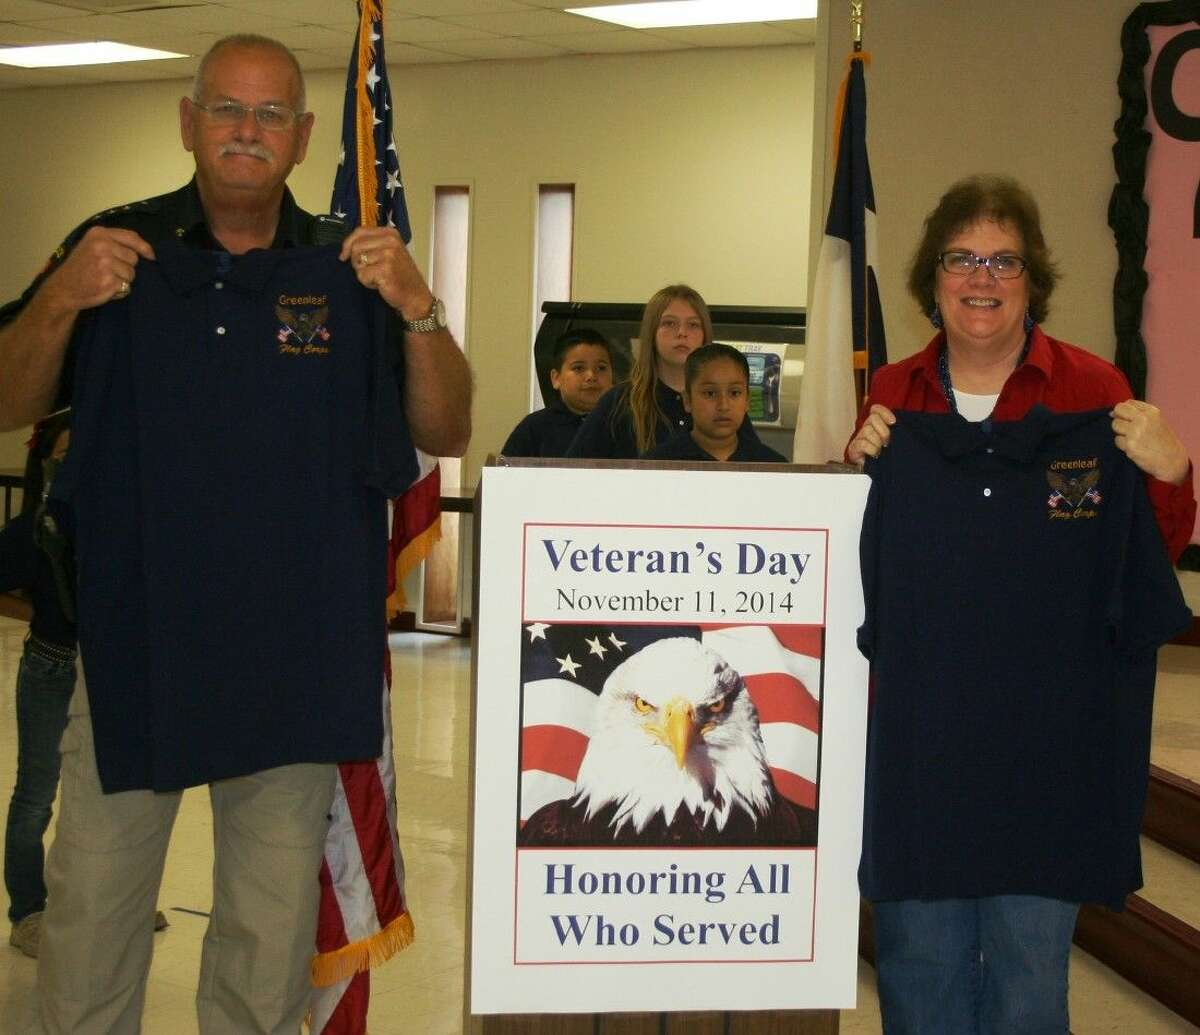 Splendora ISD Chief Dennis Doerge and Greenleaf Elementary Principal Dr. Carolyn King were recognized on Nov. 11, during a Veterans Day ceremony.